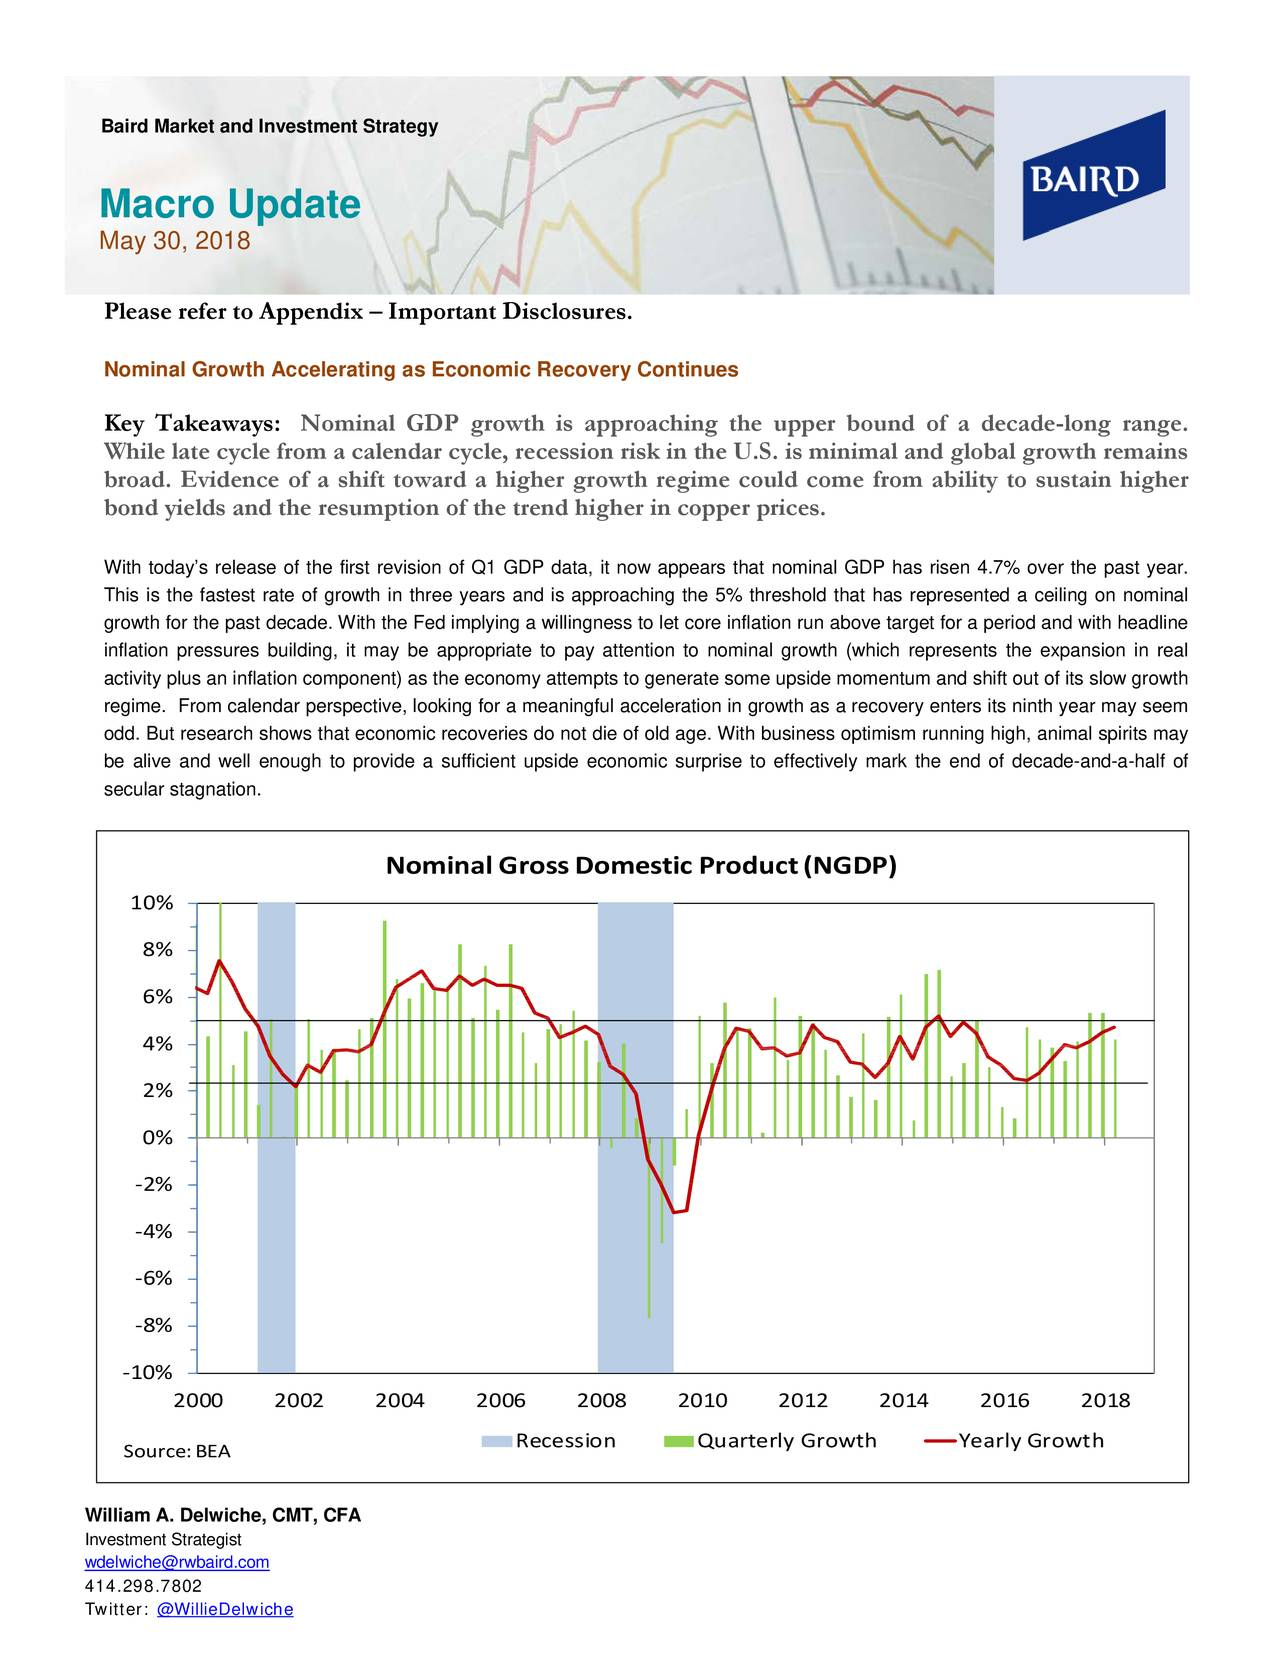 Macro Update May 30, 2018 Please refer to Appendix – Important Disclosures. Nominal Growth Accelerating as Economic Recovery Continues Key Takeaways: Nominal GDP growth is approaching the upper bound of a decade-long range. While late cycle from a calendar cycle, recession risk in the U.S. is minimal and global growth remains broad. Evidence of a shift tow ard a higher growth regime could come from ability to sustain higher bond yields and the resumption of the trend higher in copper prices. With today's release of the first revision of Q1 GDP data, it now appears that nominal GDP has risen 4.7% over the past year. This is the fastest rate of growth in three years and is approaching the 5% threshold that has represented alceiling on nomin growth for the past decade. With the Fed implying a willingness to let core inflation run above target for a period and with headline inflation pressures building, it may be appropriate to pay attention to nominal growth (which represents thelexpansion in rea activity plus an inflation component) as the economy attempts to generate some upside momentum and shift out of its slow growth regime. From calendar perspective, looking for a meaningful acceleration in growth as a recovery enters its ninth year may seem odd. But research shows that economic recoveries do not die of old age. With business optimism running high, animal spi rits may be alive and well enough to provide a sufficient upside economic surprise to effectively mark the end -half ofe-and-a secular stagnation. Nominal Gross Domestic Product (NGDP) 10% 8% 6% 4% 2% 0% -2% -4% -6% -8% -10% 2000 2002 2004 2006 2008 2010 2012 2014 2016 2018 Recession Quarterly Growth Yearly Growth Source: BEA William A. Delwiche, CMT, CFA Investment Strategist wdelwiche@rwbaird.com 414.298.7802 Twitter: @WillieDelwiche